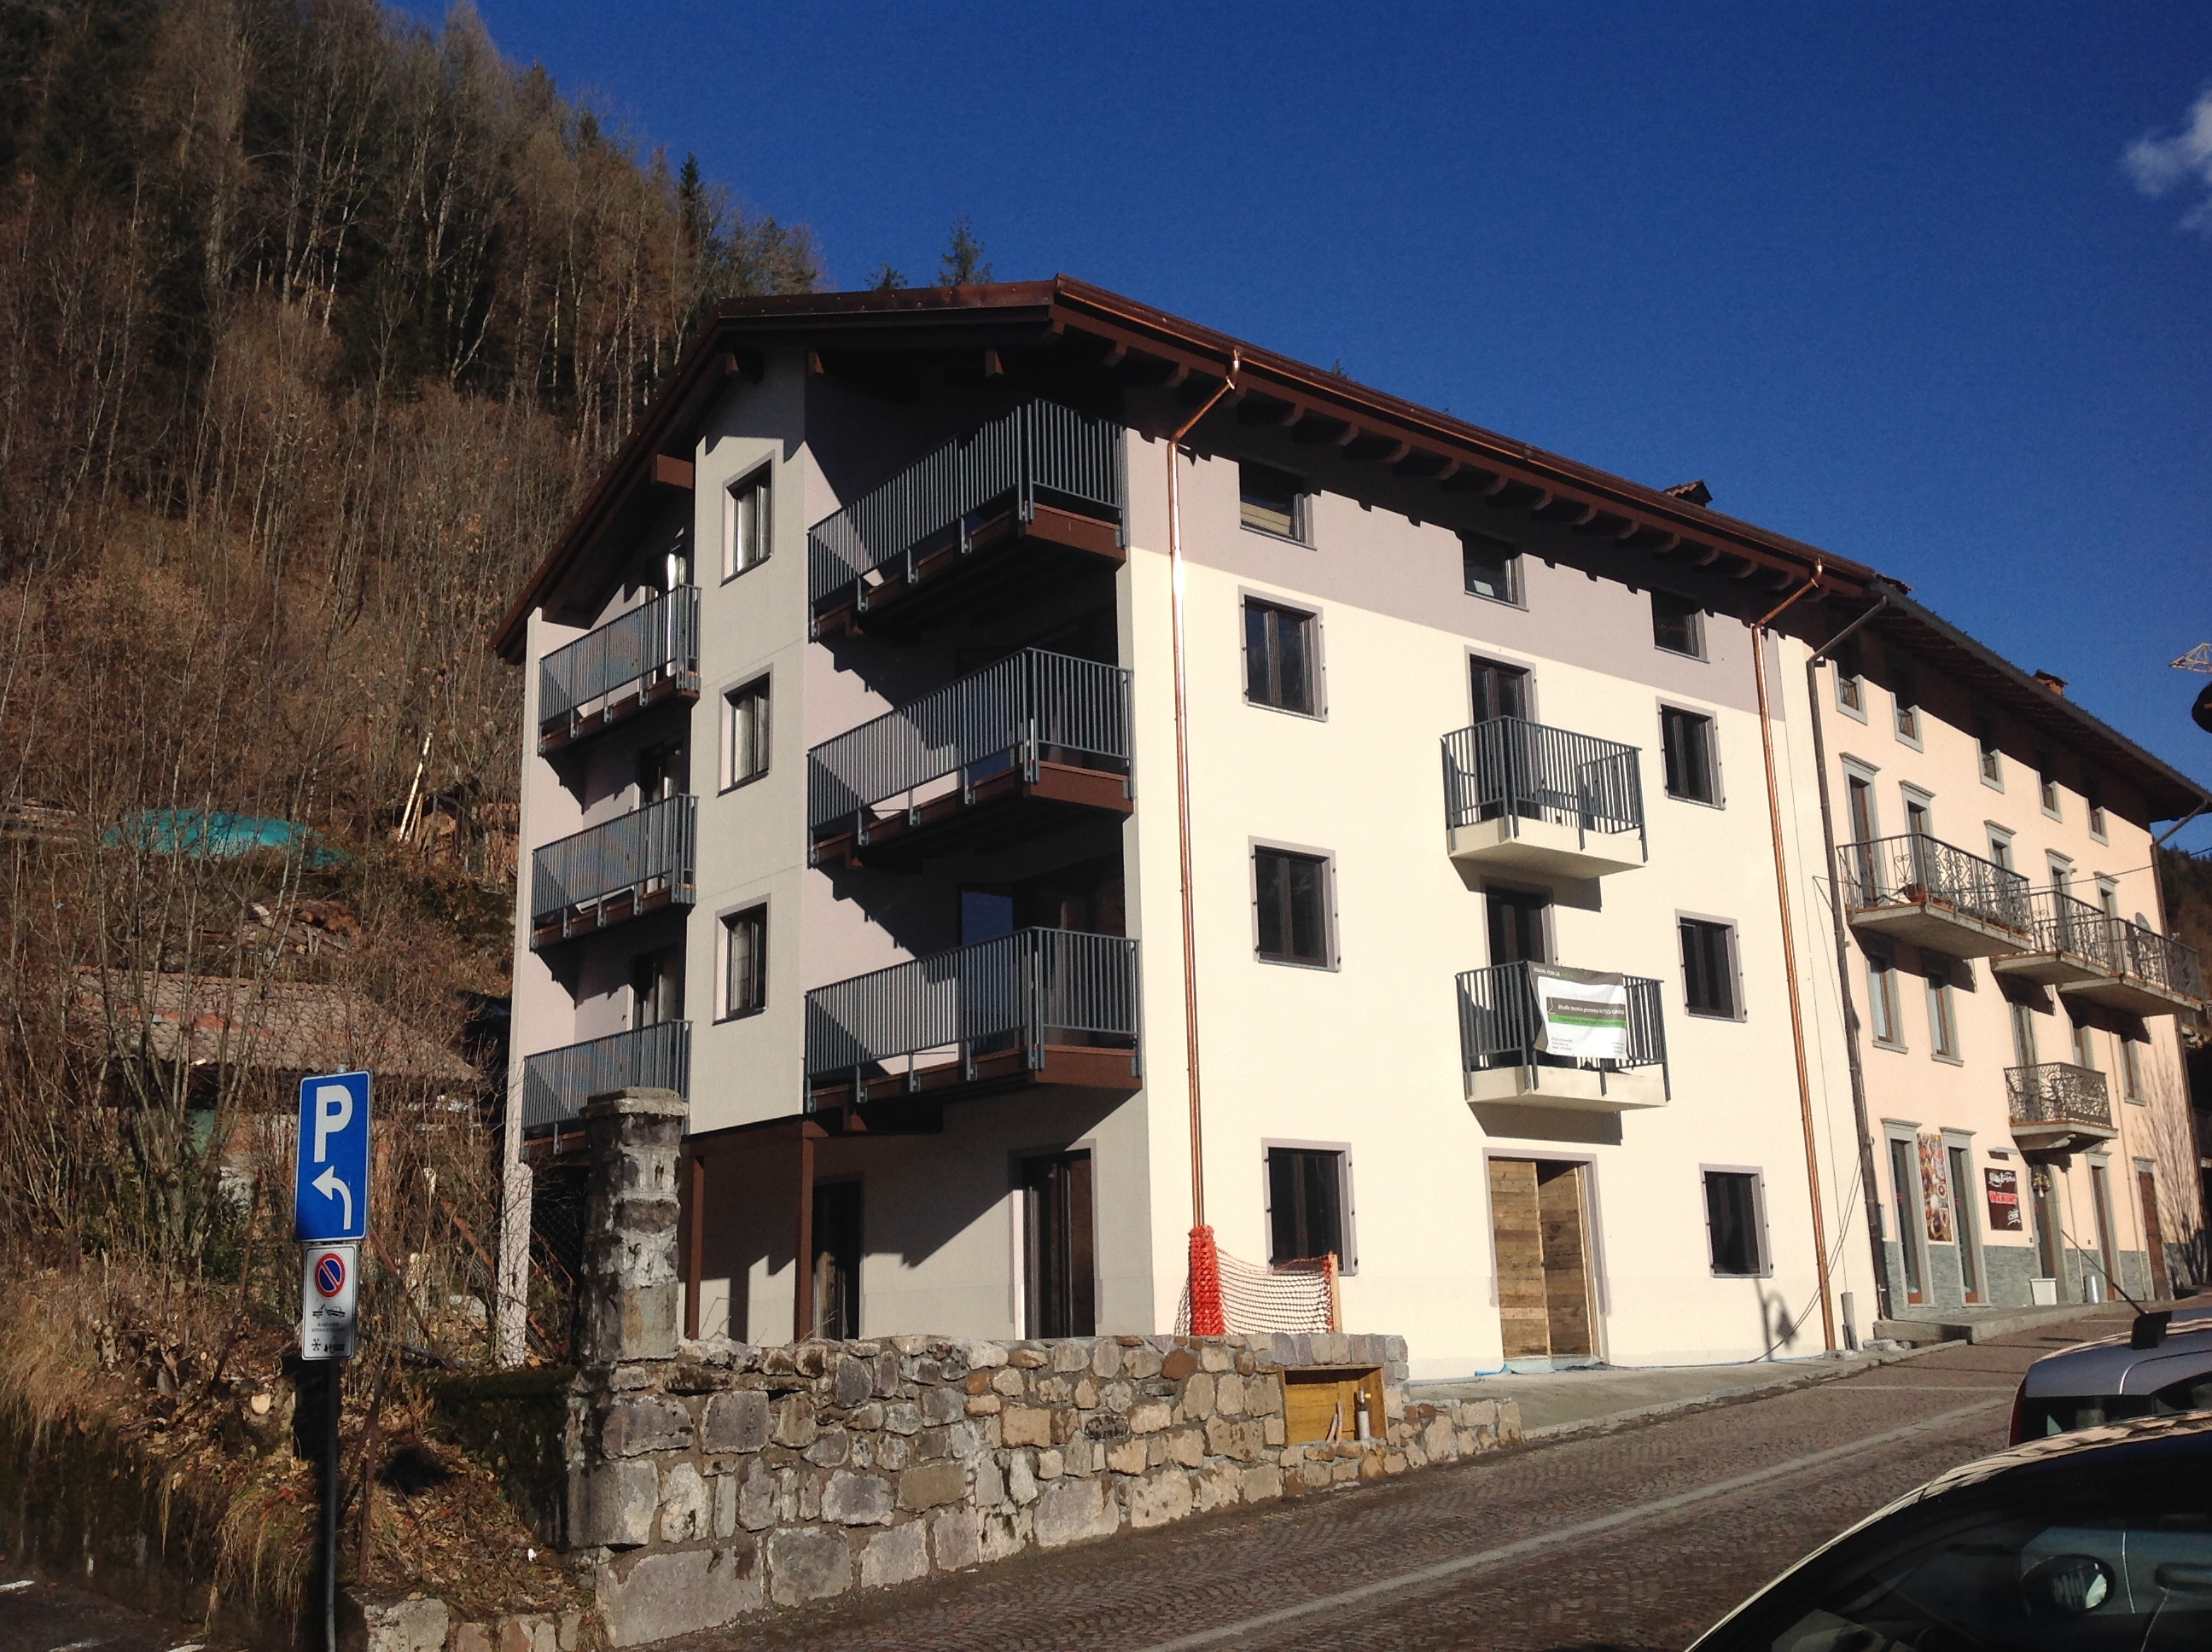 Four storey wooden building in Italy